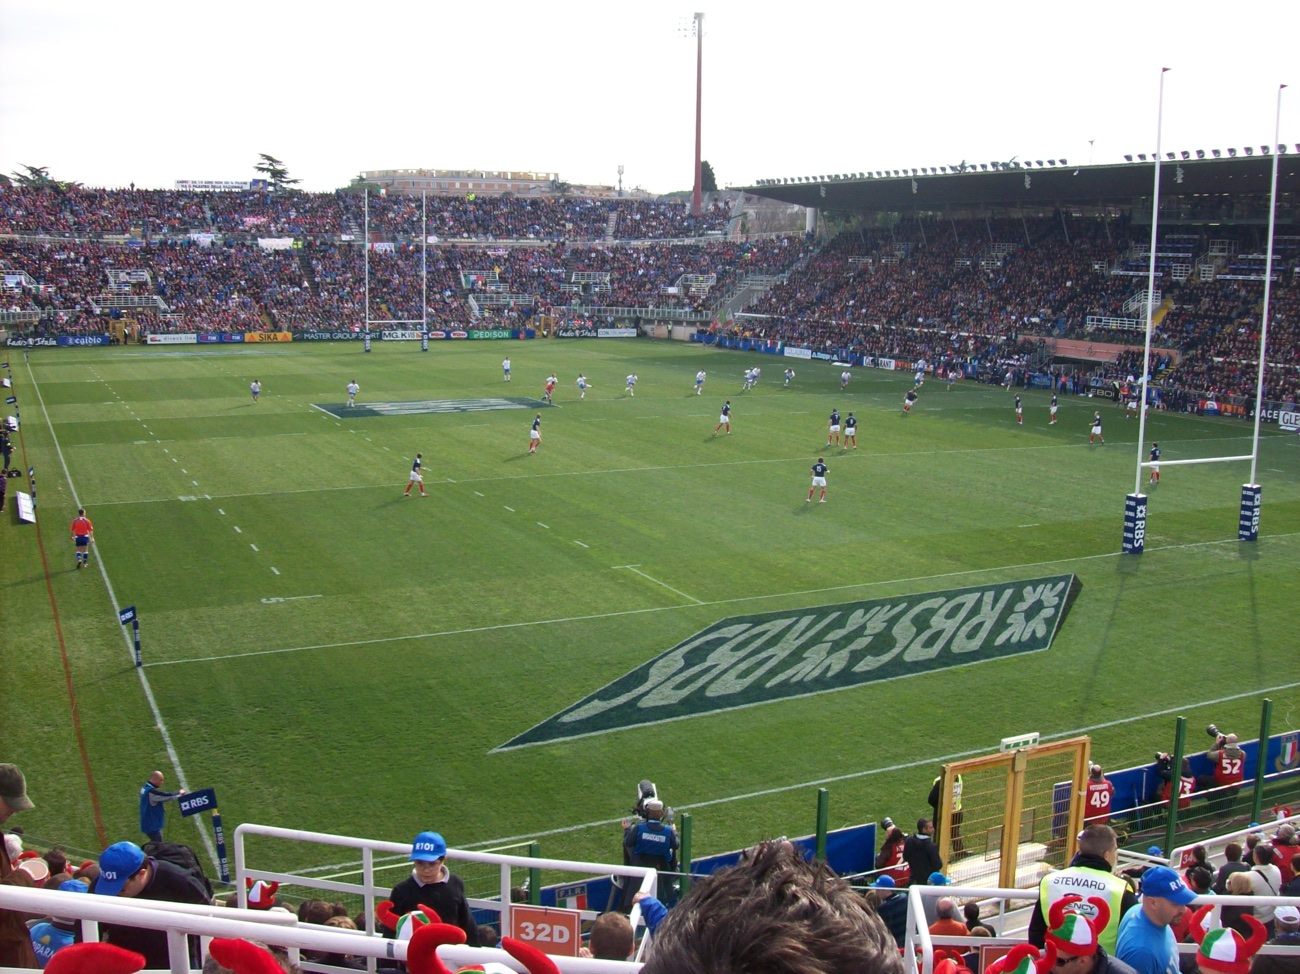 Overhead view of a rugby match in progress in a large open-air stadium